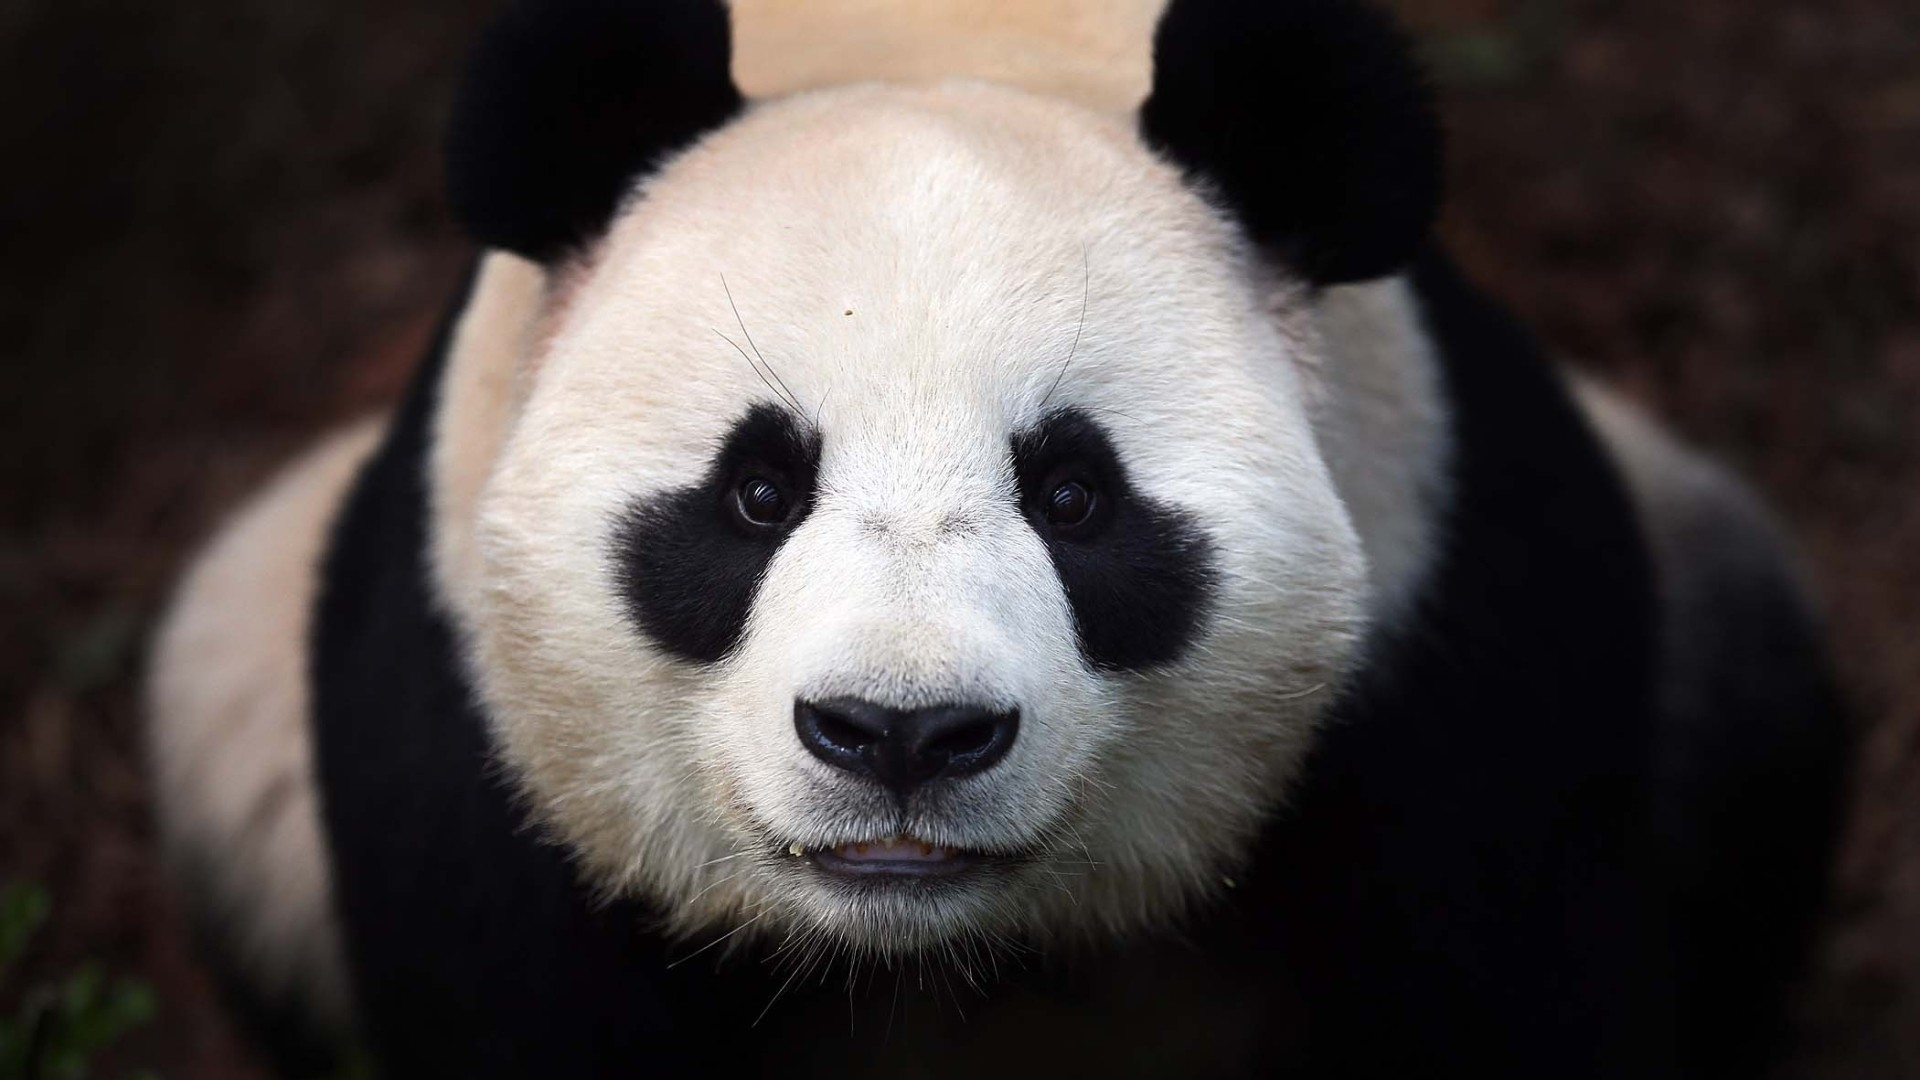 The 20 best images about Panda on Pinterest   How to draw, Panda drawing  and Wallpaper pictures